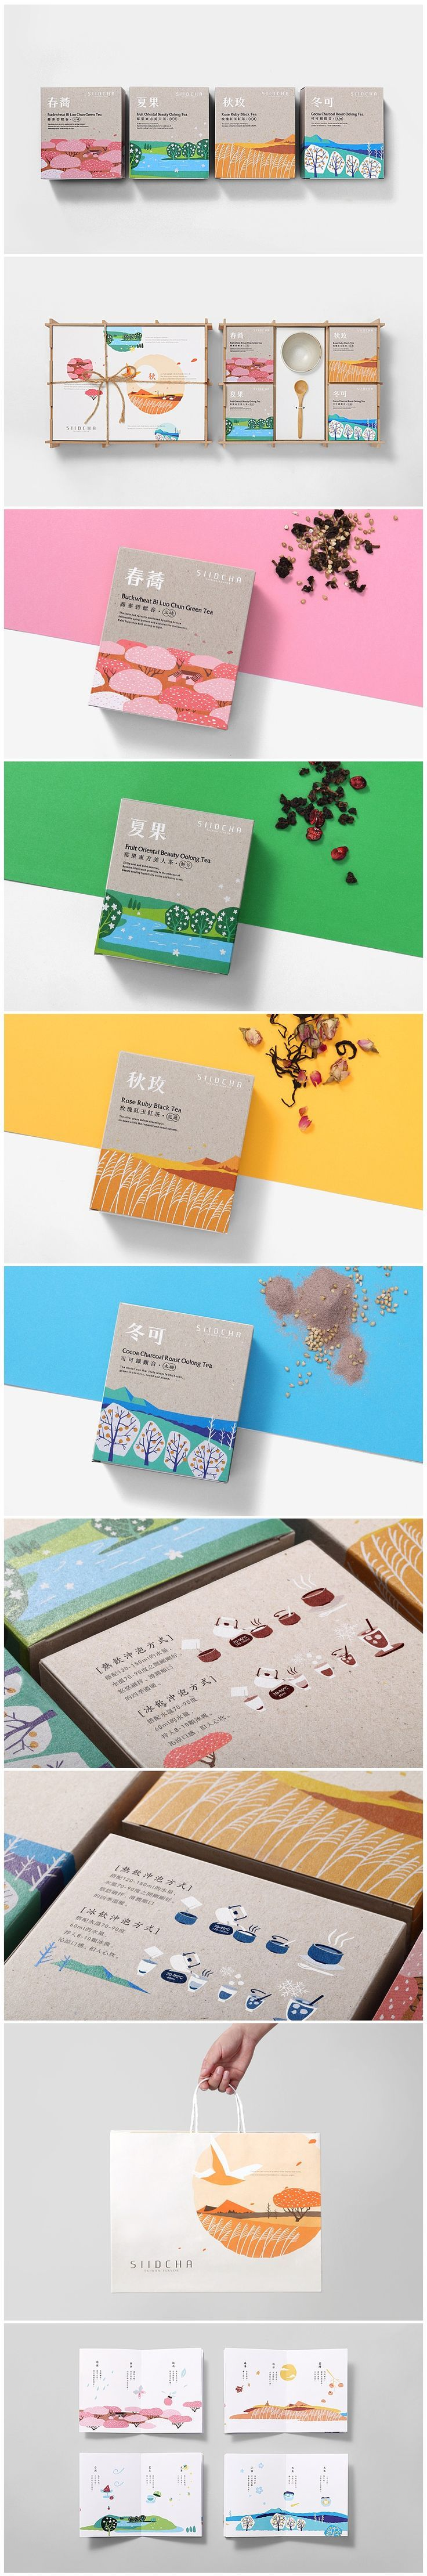 SIIDCHA Four Season Gift Set